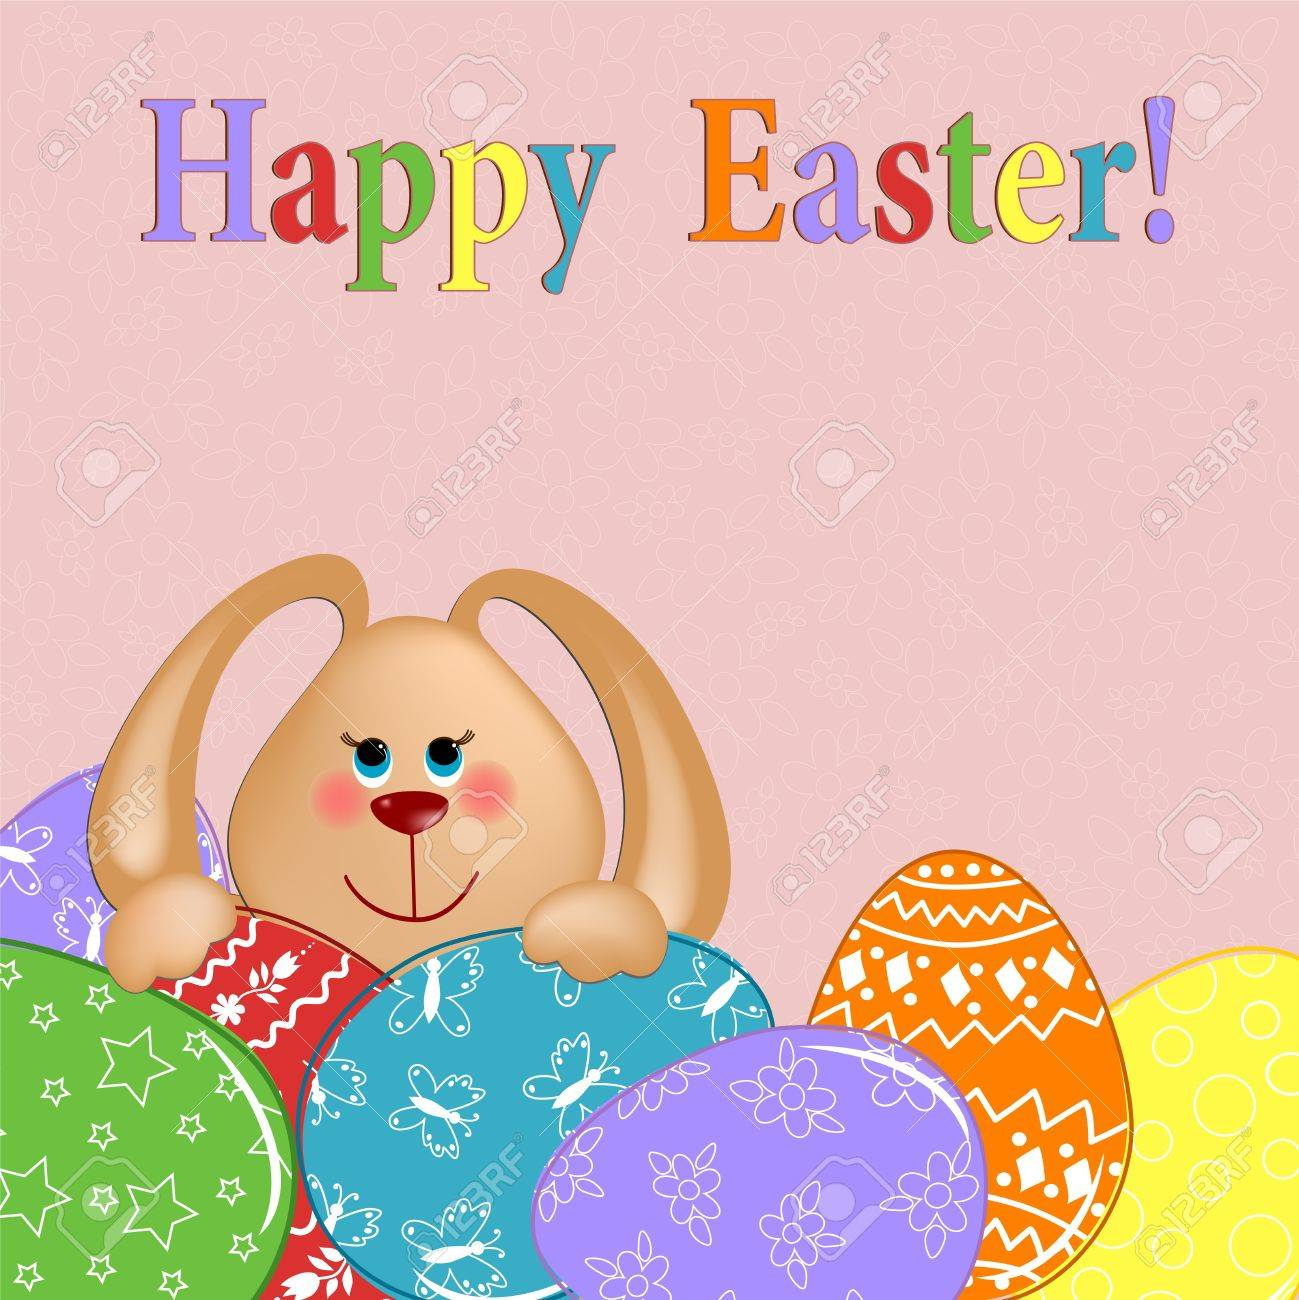 Easter greetings card with rabbit and painted eggs Stock Vector - 9117177